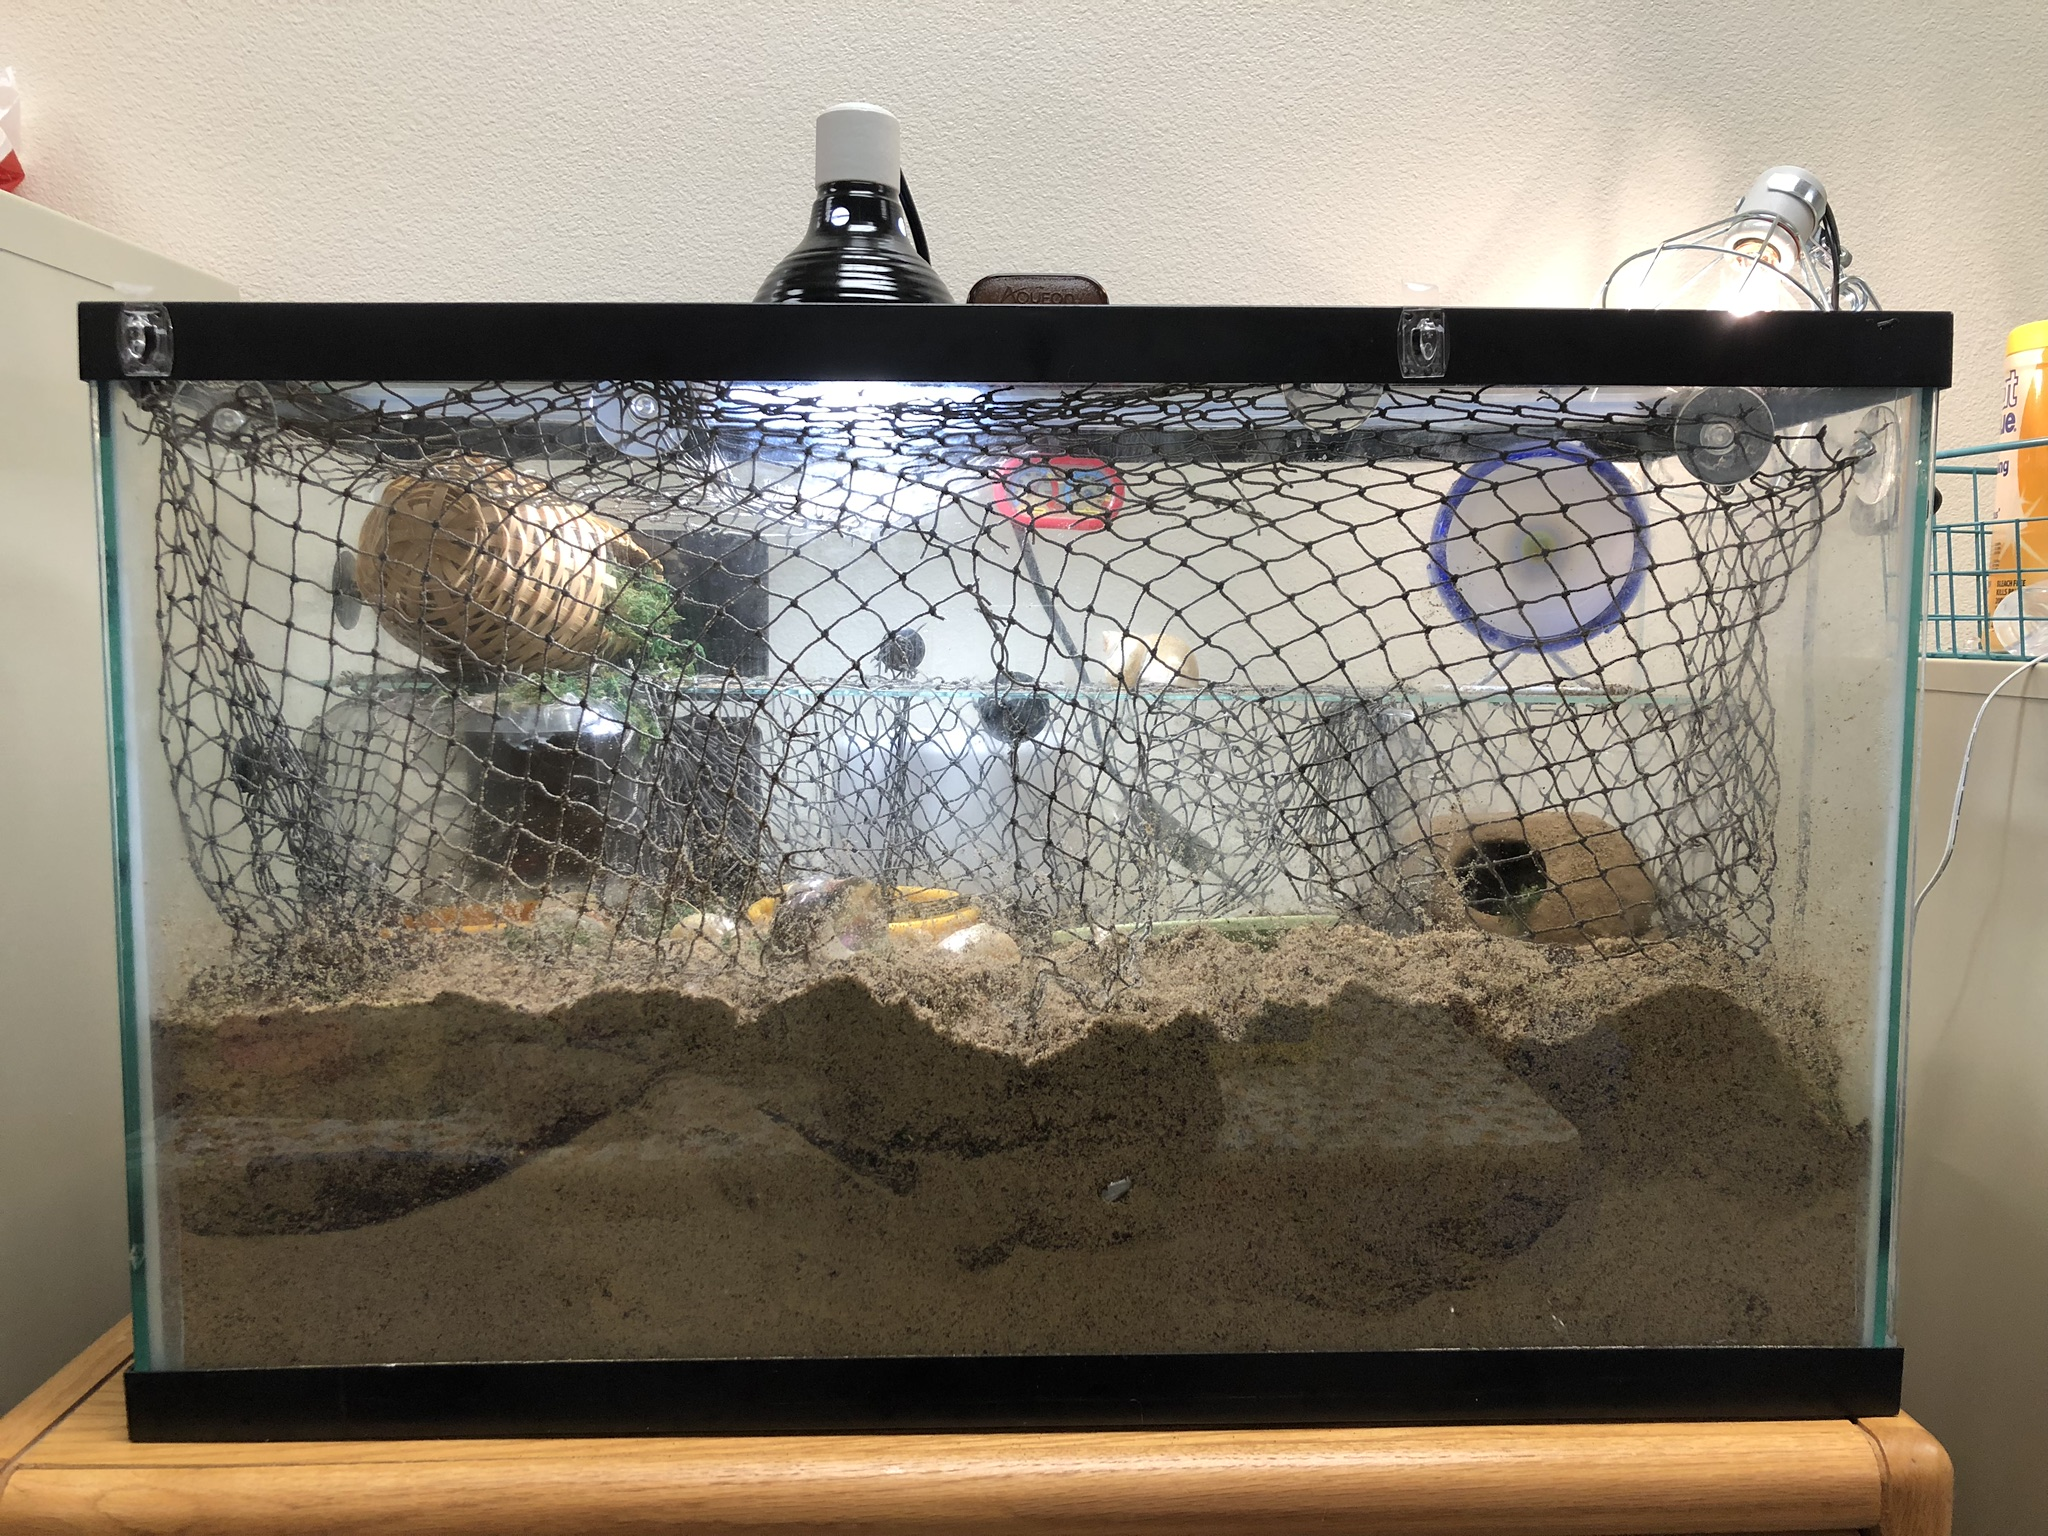 An appropriate tank for land hermit crabs.